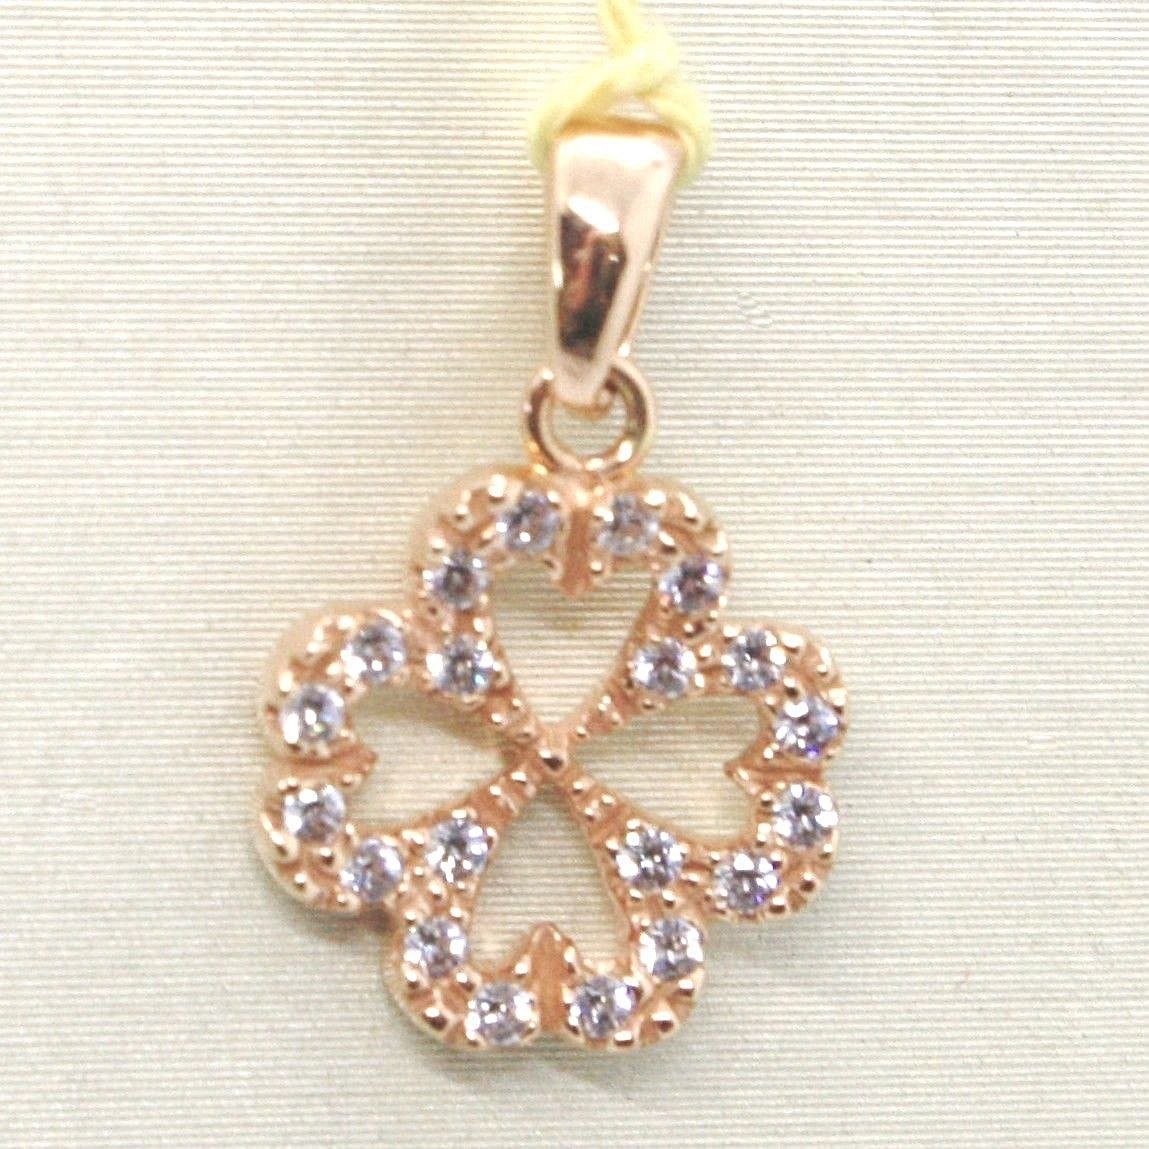 PENDANT ROSE GOLD 750 18K, FOUR-LEAF CLOVER WITH ZIRCON, MADE IN ITALY